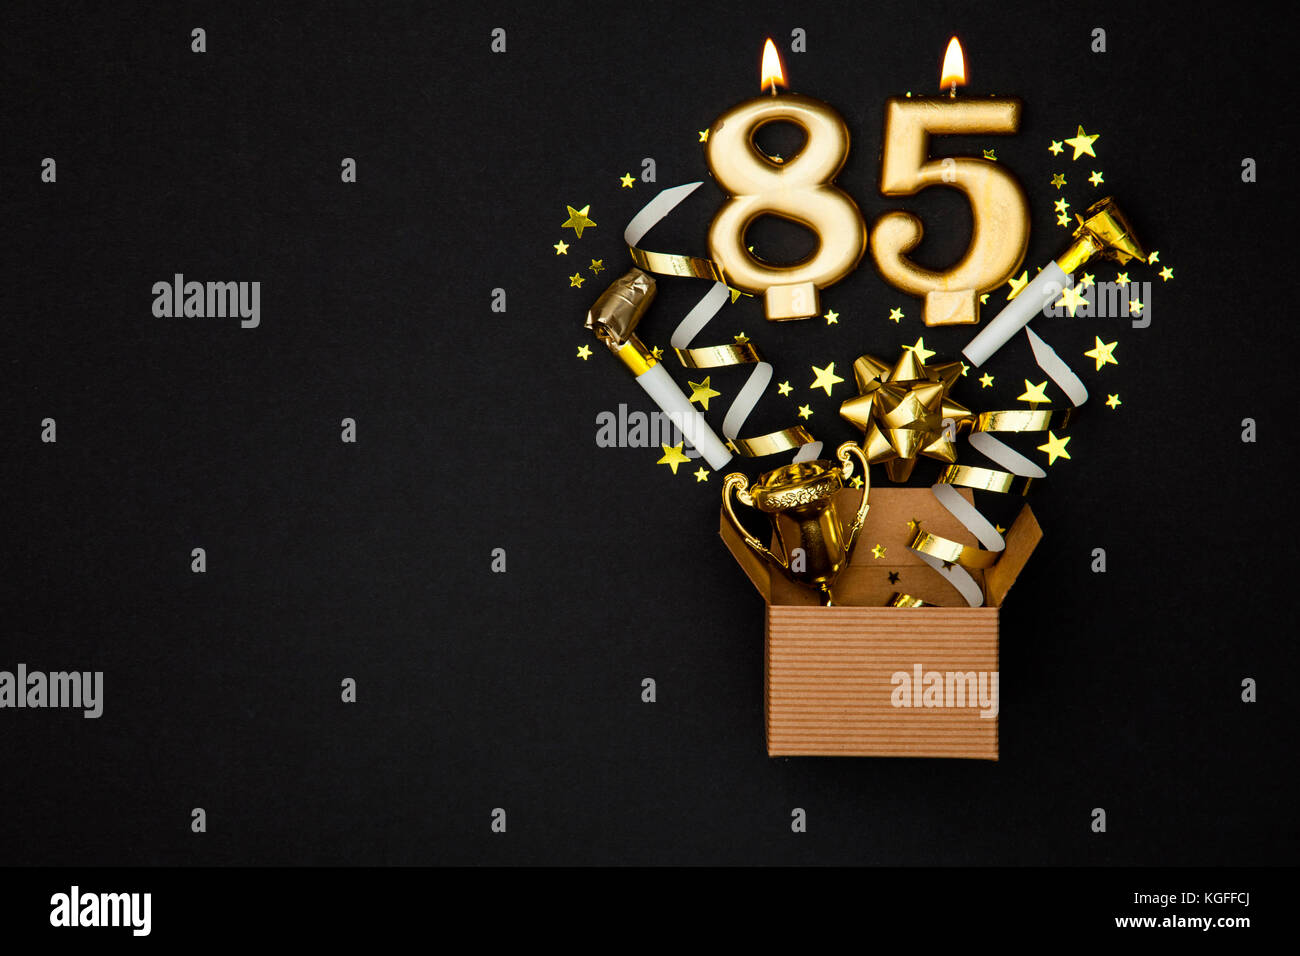 Diagram Number 95 Gold Celebration Candle And Gift Box Background